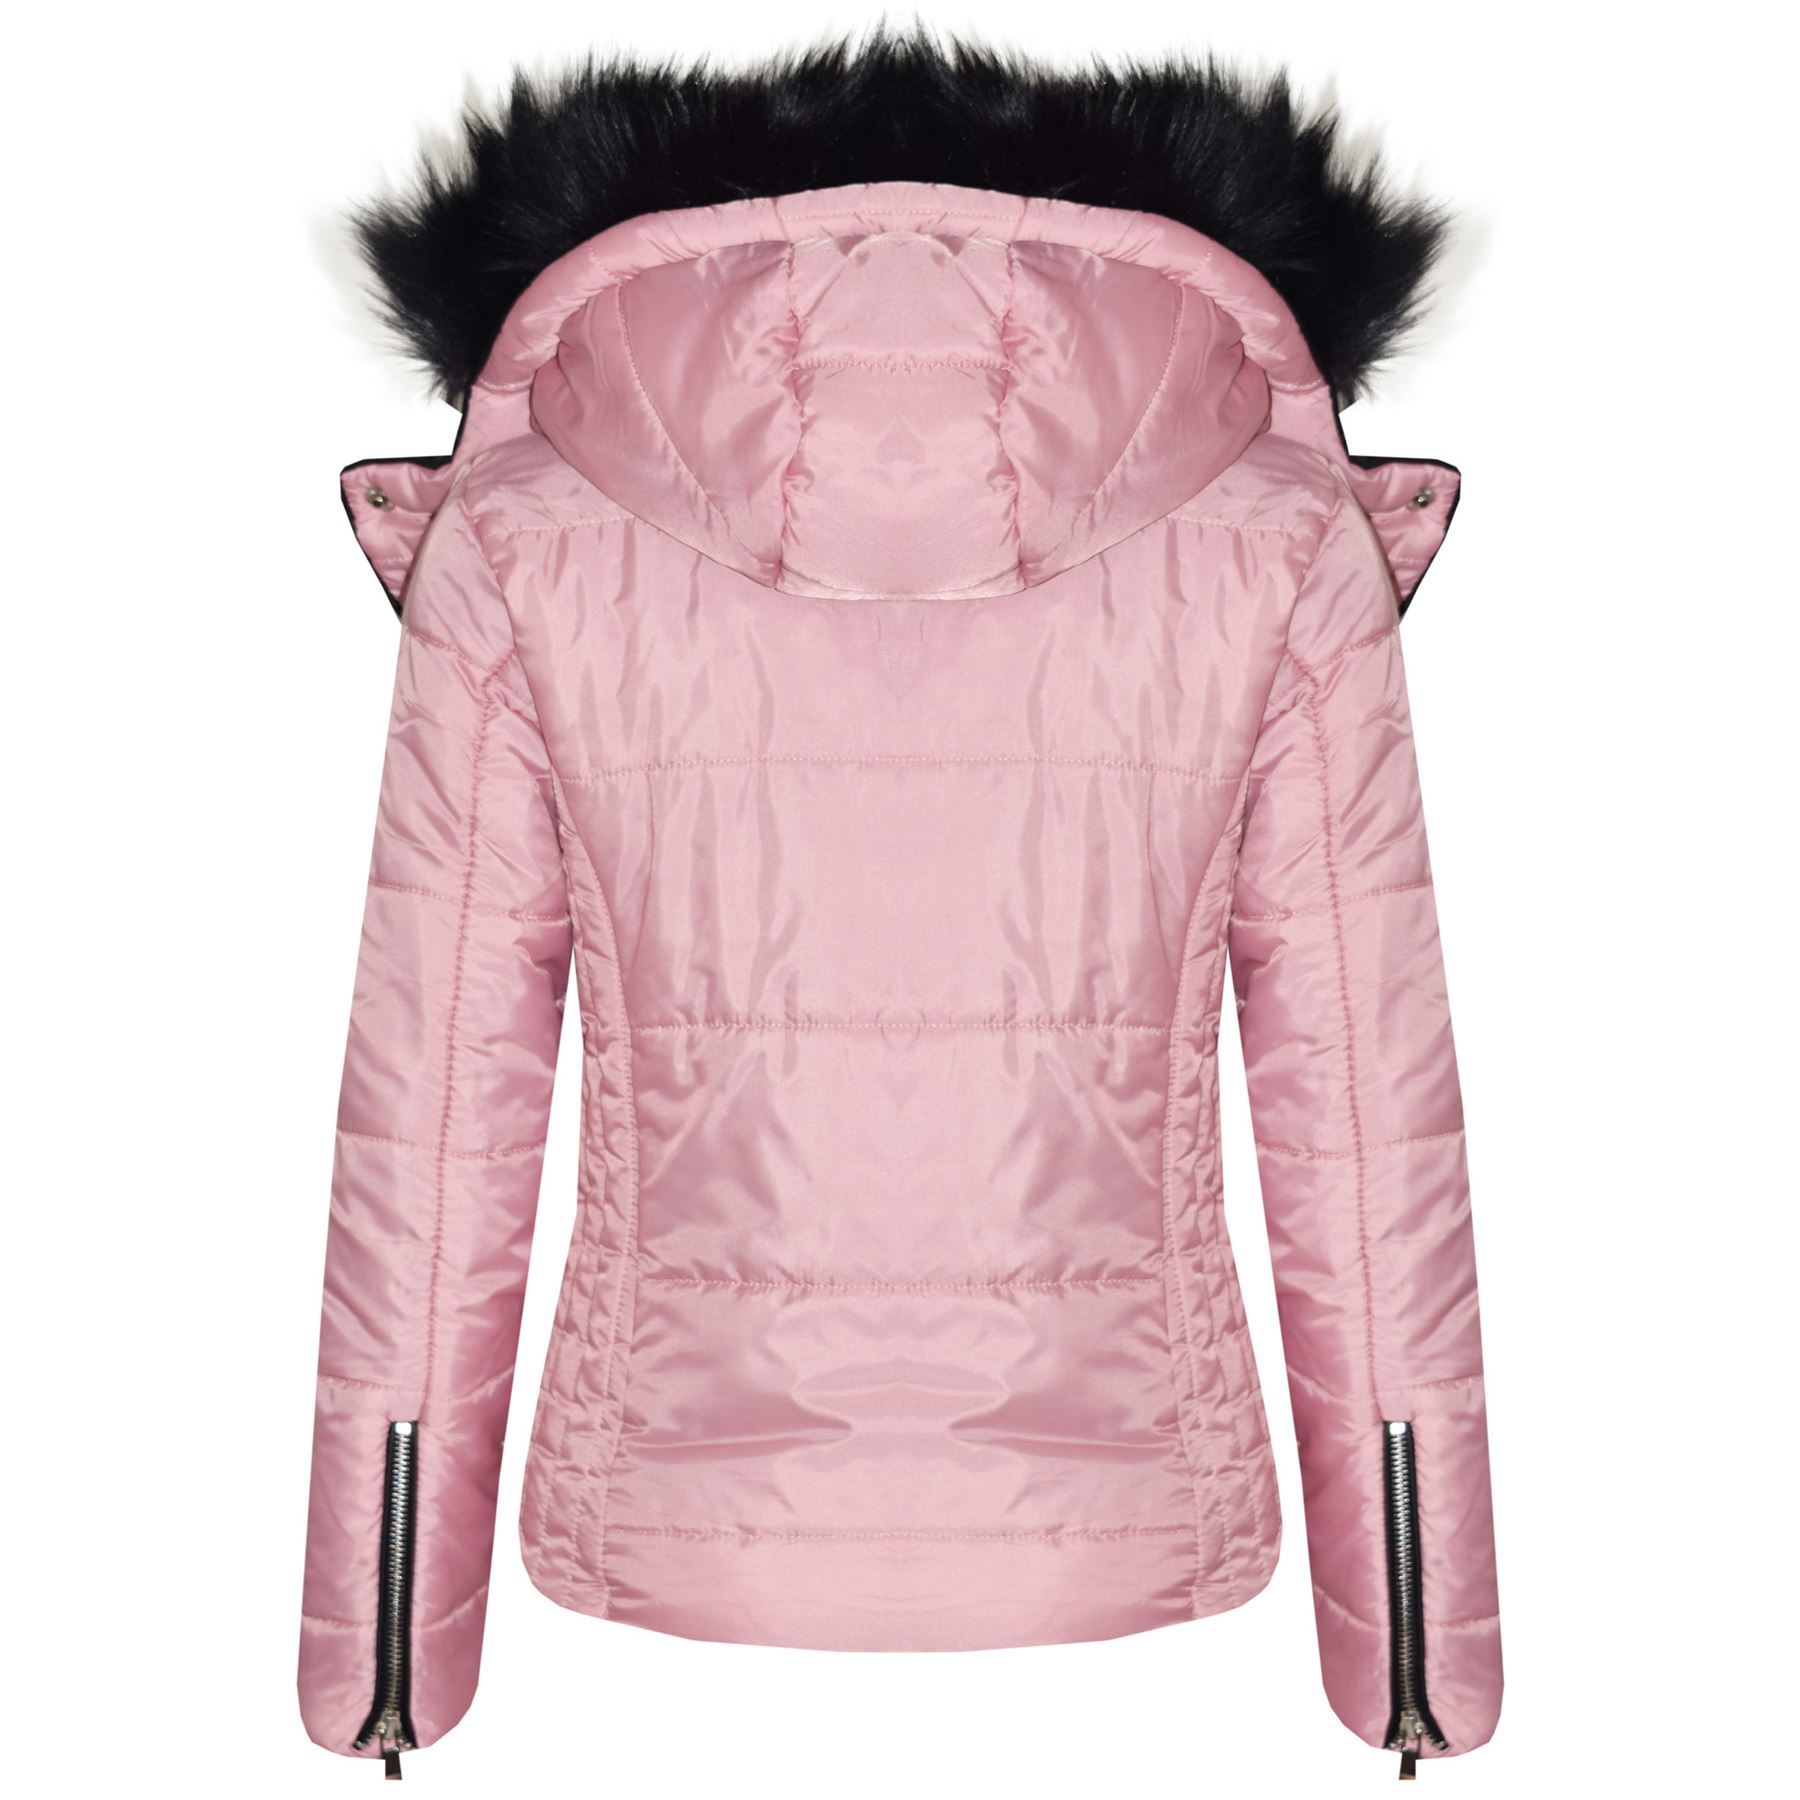 130795e39 Details about Kids Girls Jackets Pink Cropped Padded Puffer Bubble Fur  Collar Warm Thick Coats